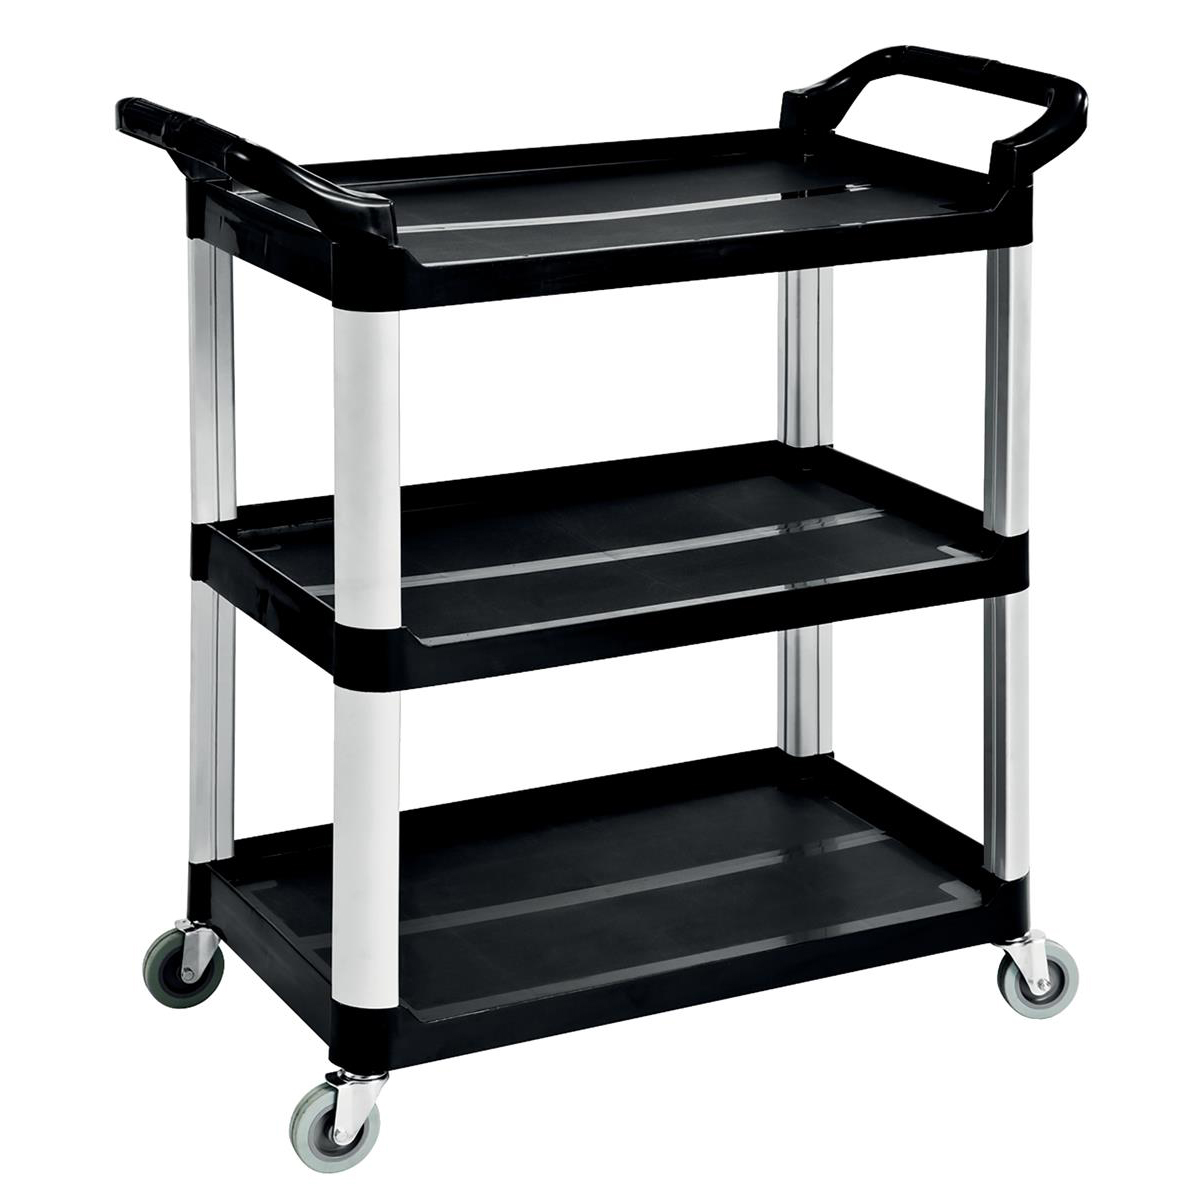 Trolleys 5 Star Facilities Utility Tray Trolley Standard 3 Shelf Capacity 150kg W460xD750xH980mm